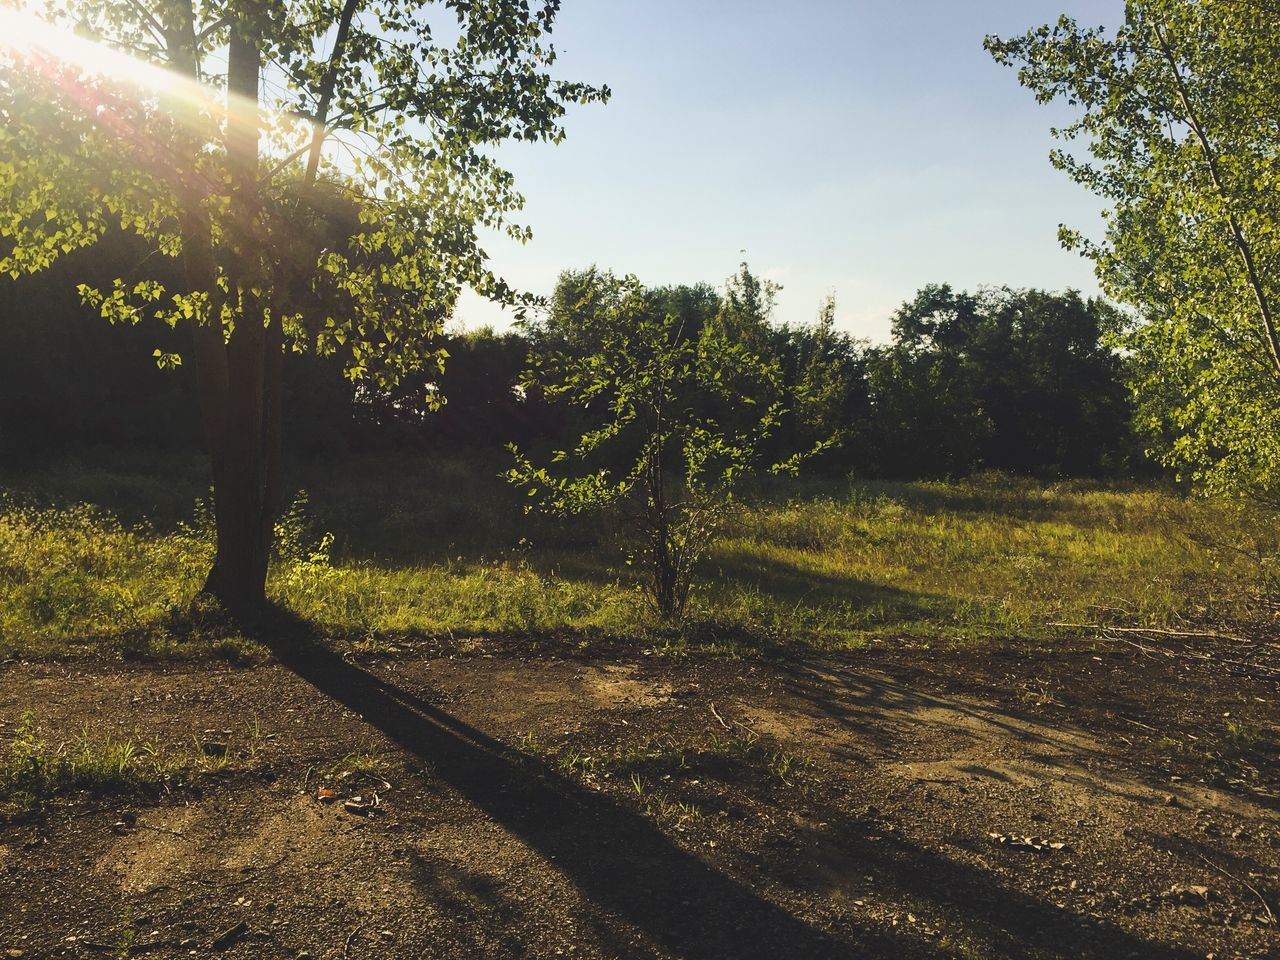 tree, nature, sunlight, no people, outdoors, growth, day, tranquility, tranquil scene, scenics, beauty in nature, landscape, sky